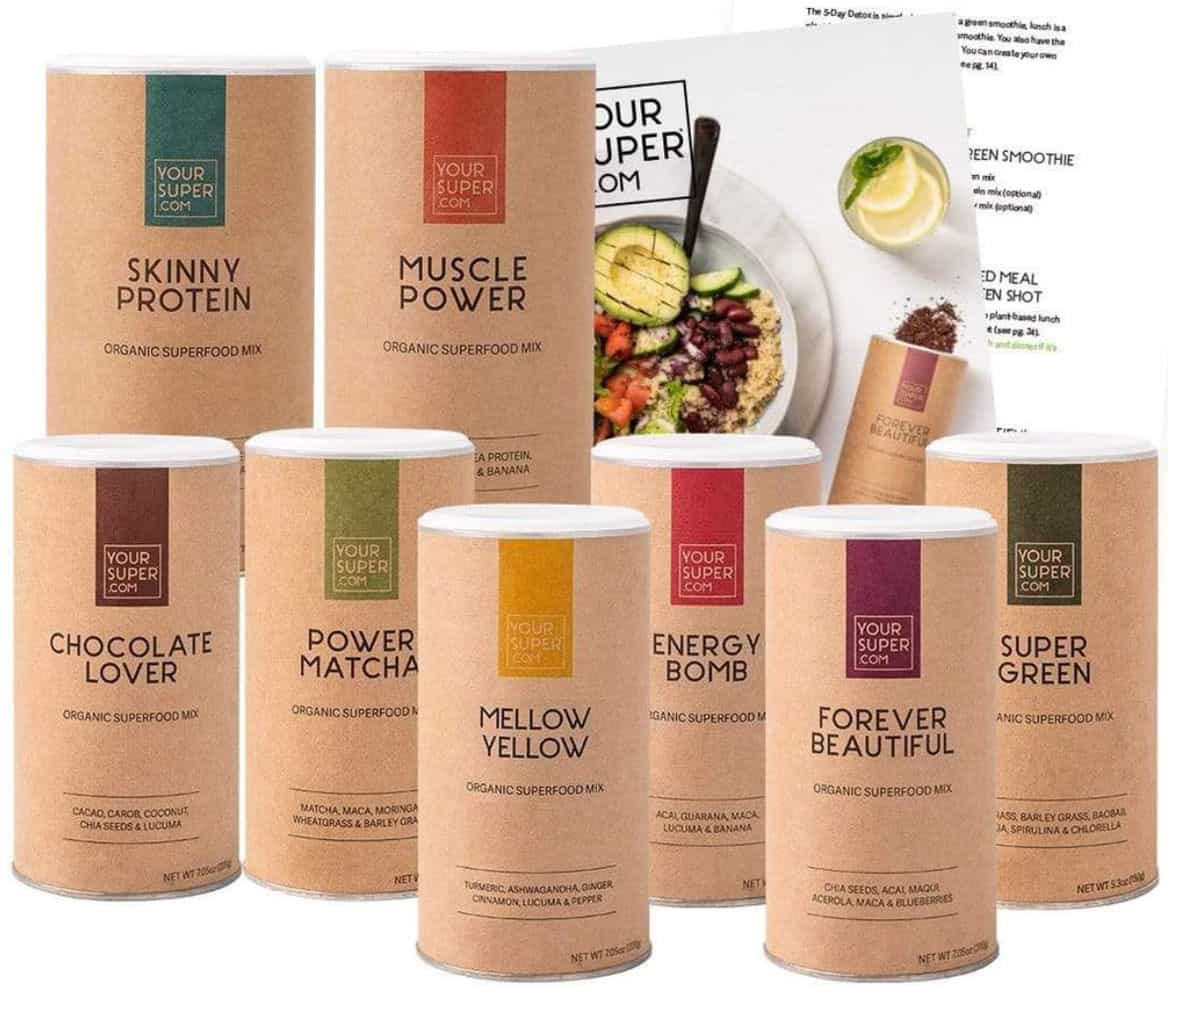 Collection of superfood powders by Your Super.com